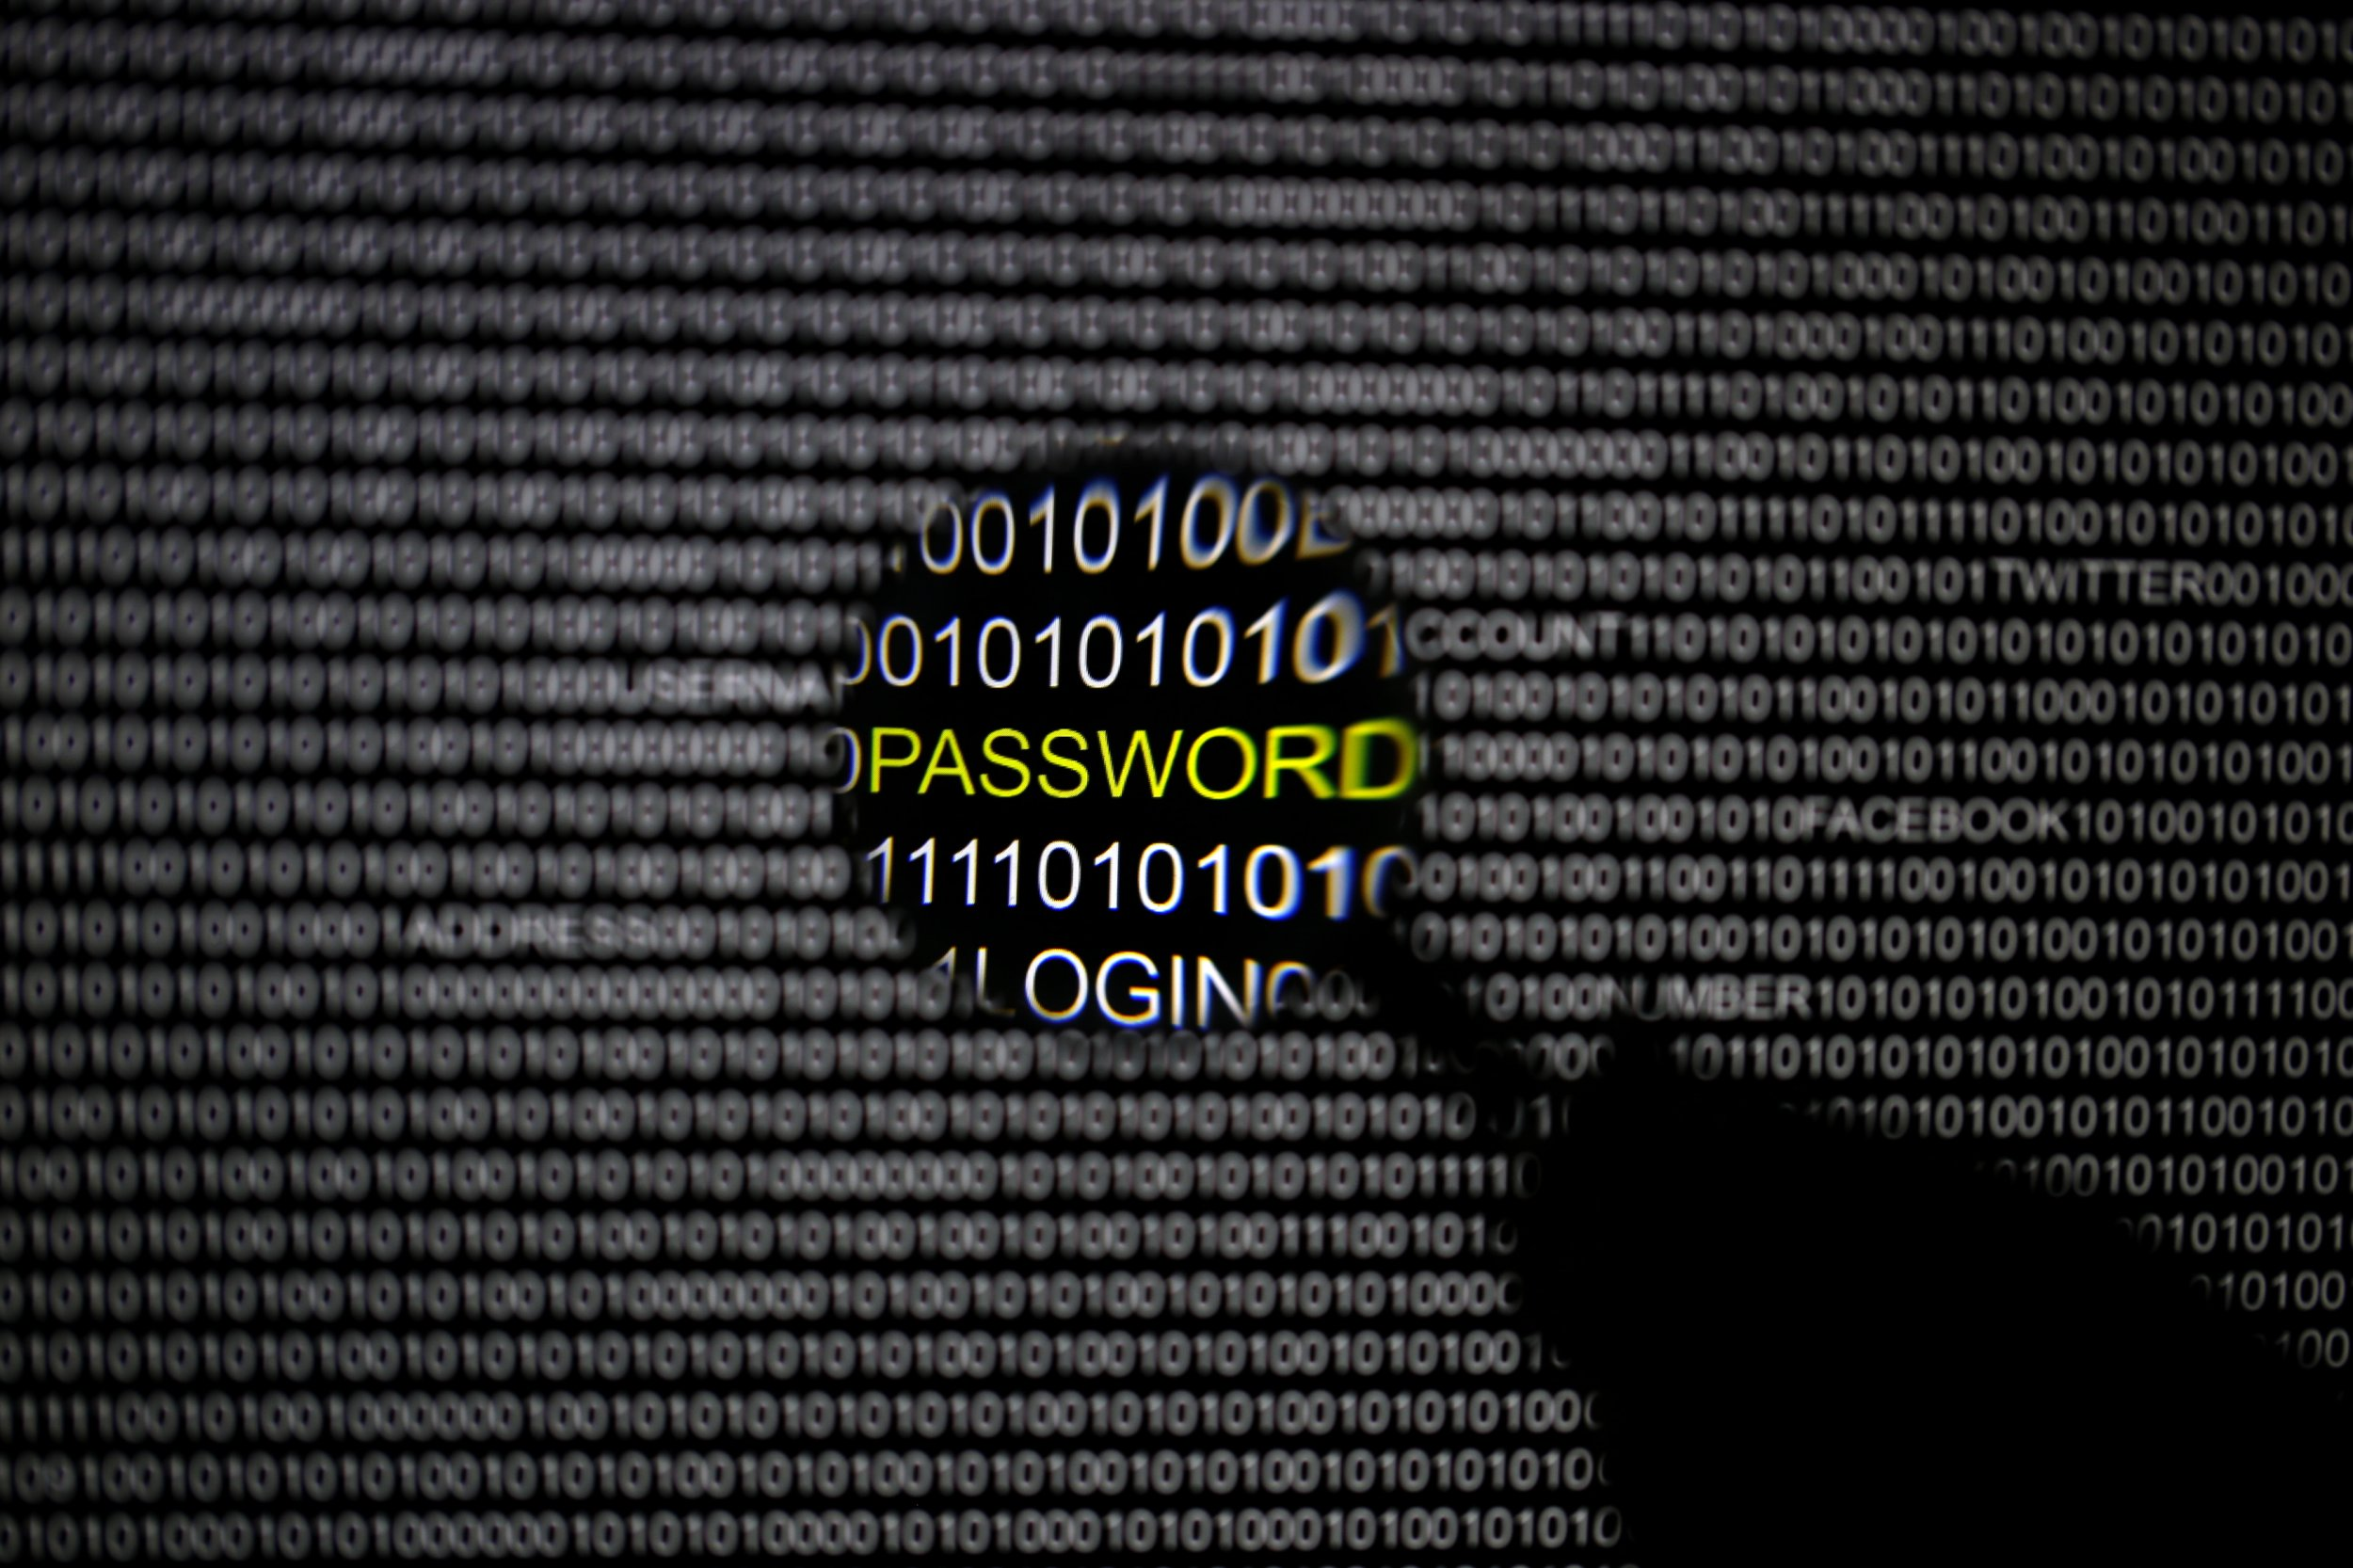 sony cyber attack one of worst in corporate history